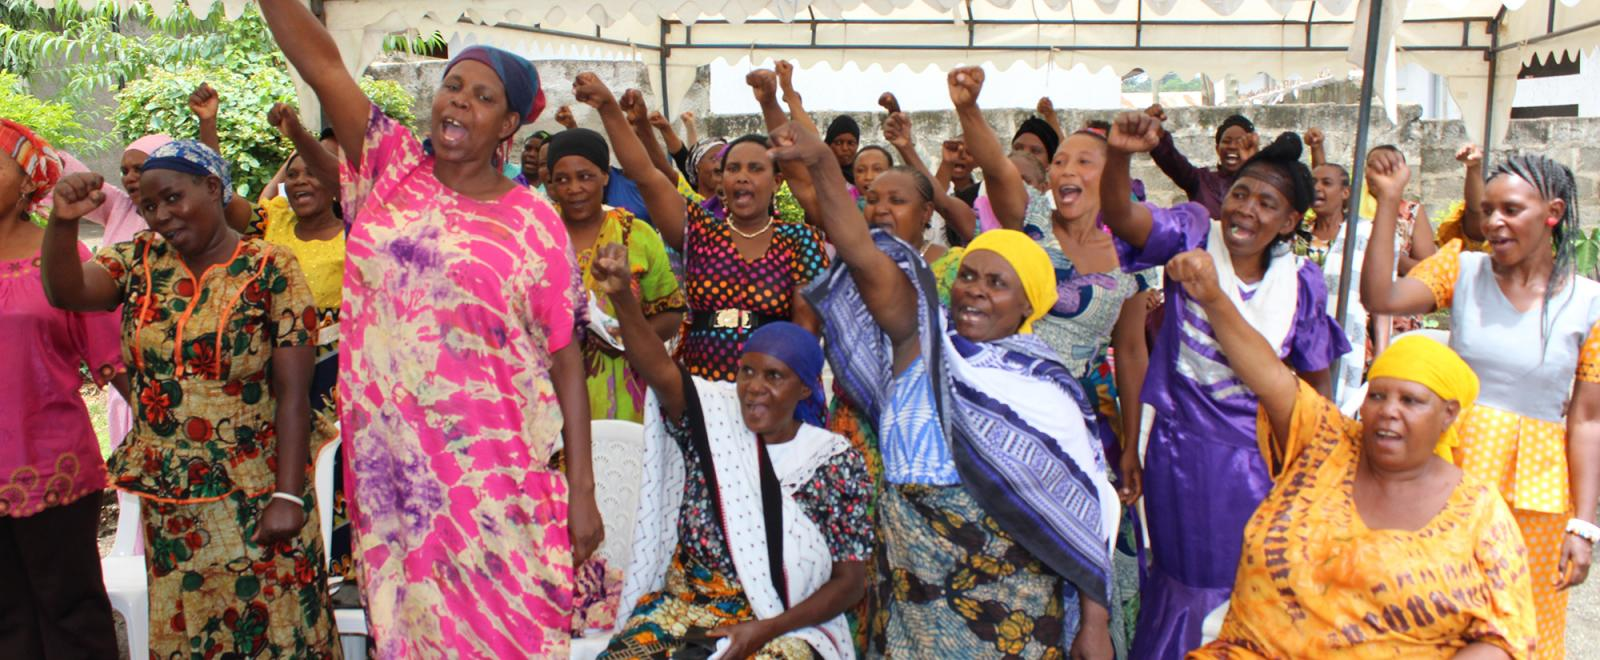 Local women attend an International Women's Day presentation at our women's empowerment program in Africa.